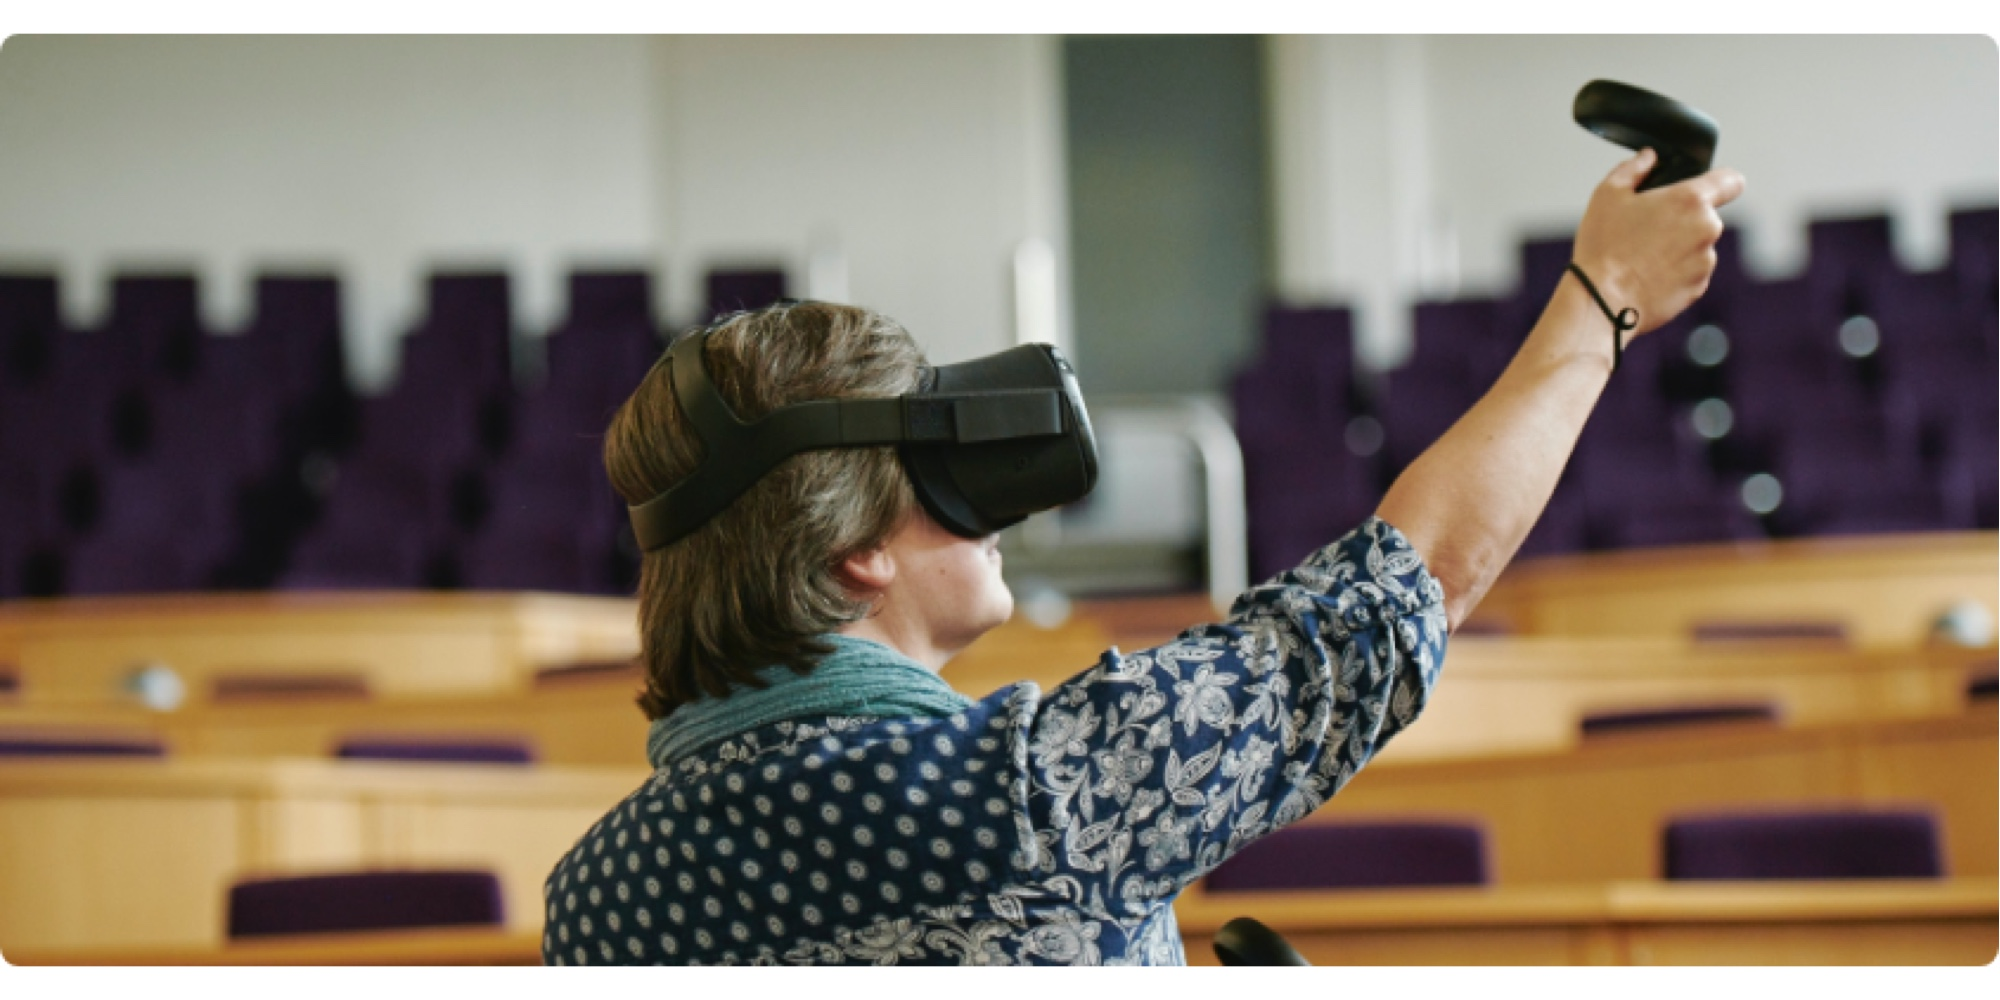 VR headset being used in a lecture theatre